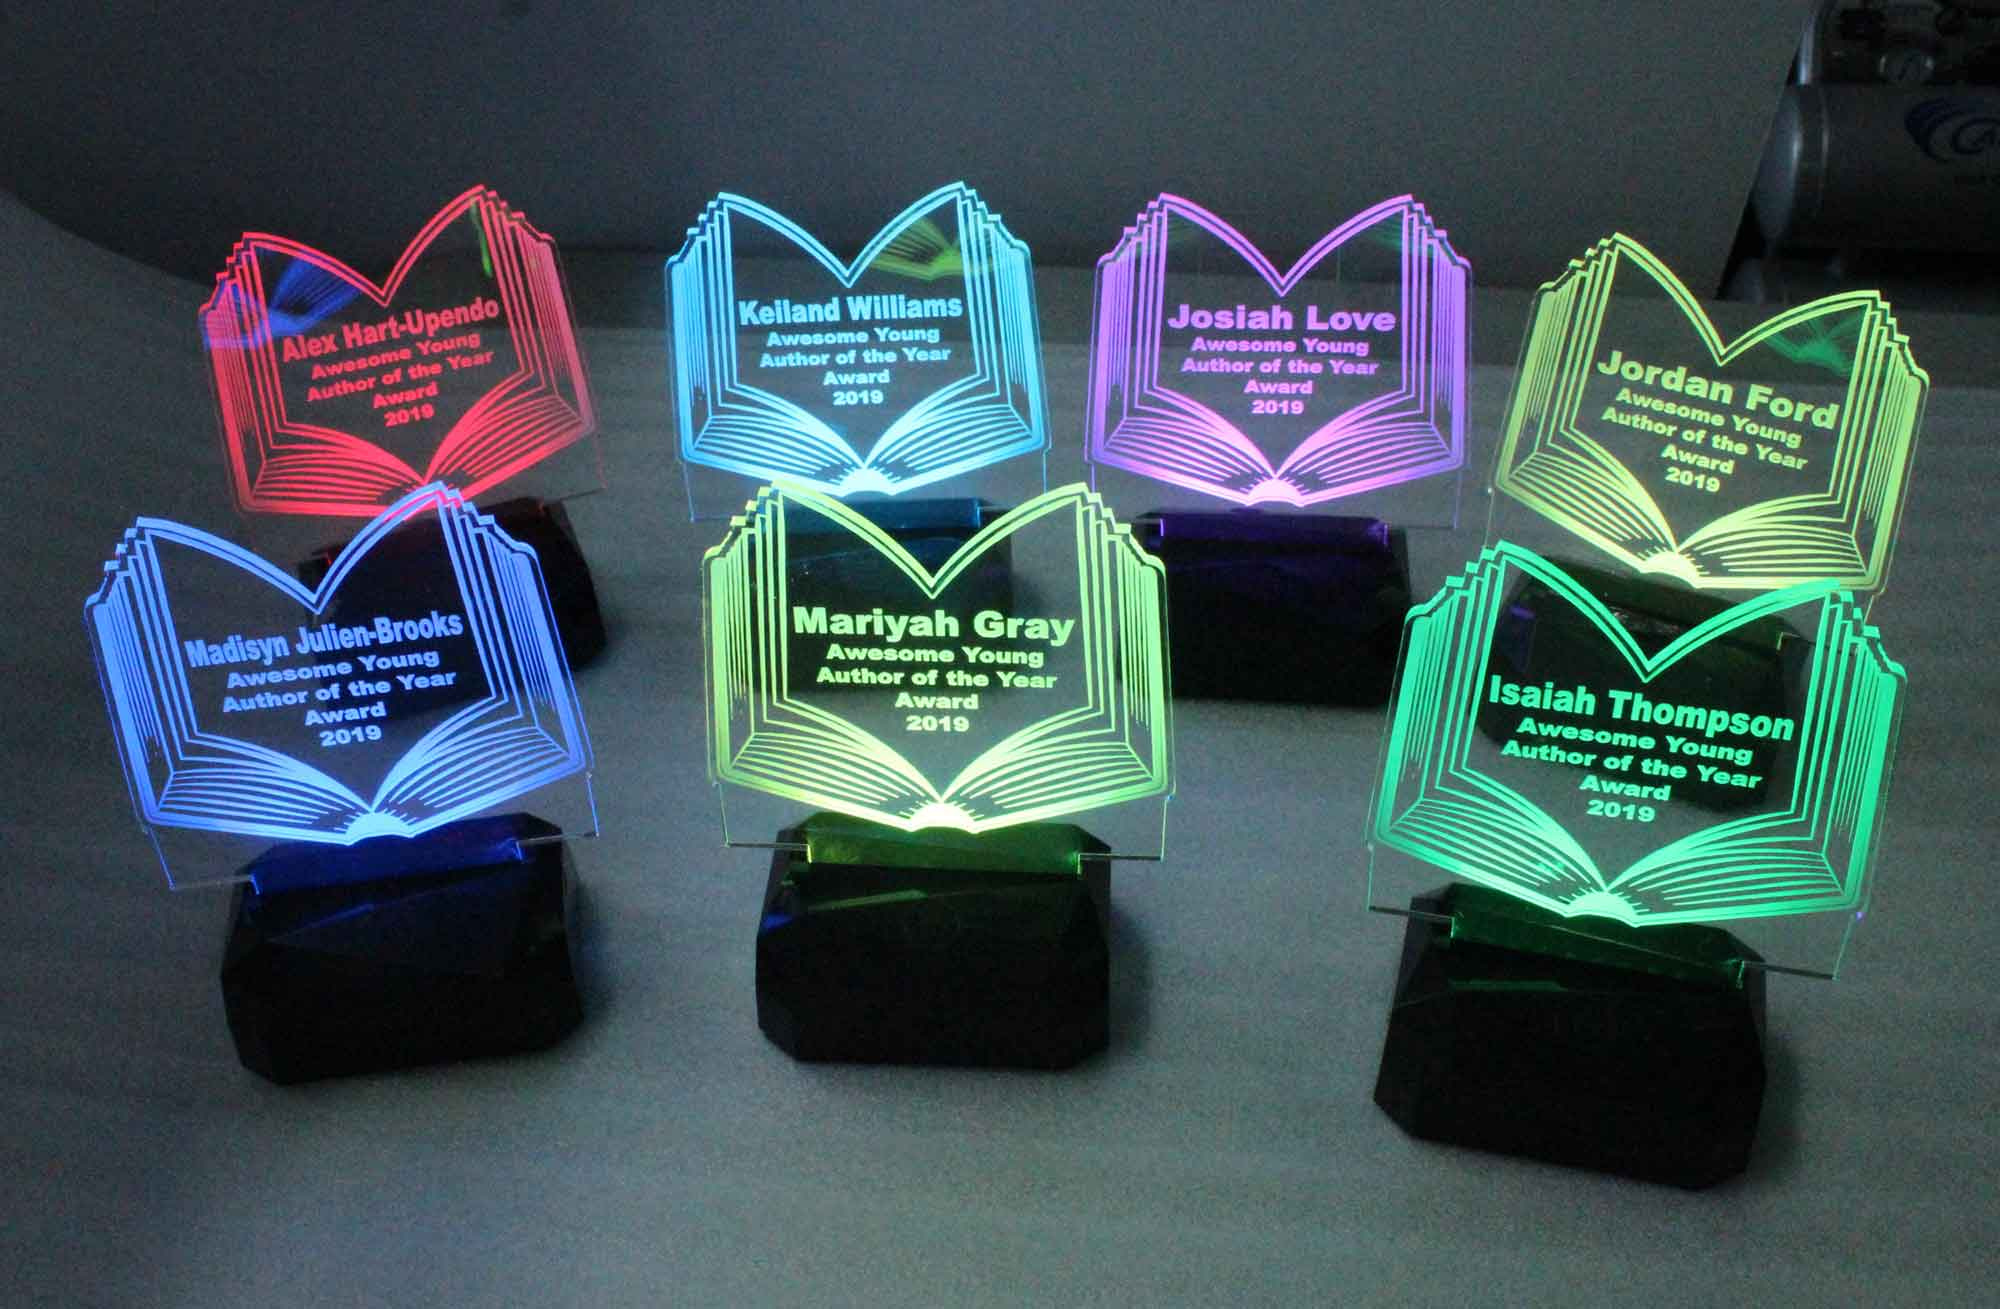 Rechargeable Battery USB/110V/240V Personalized night light, Award, name plaque